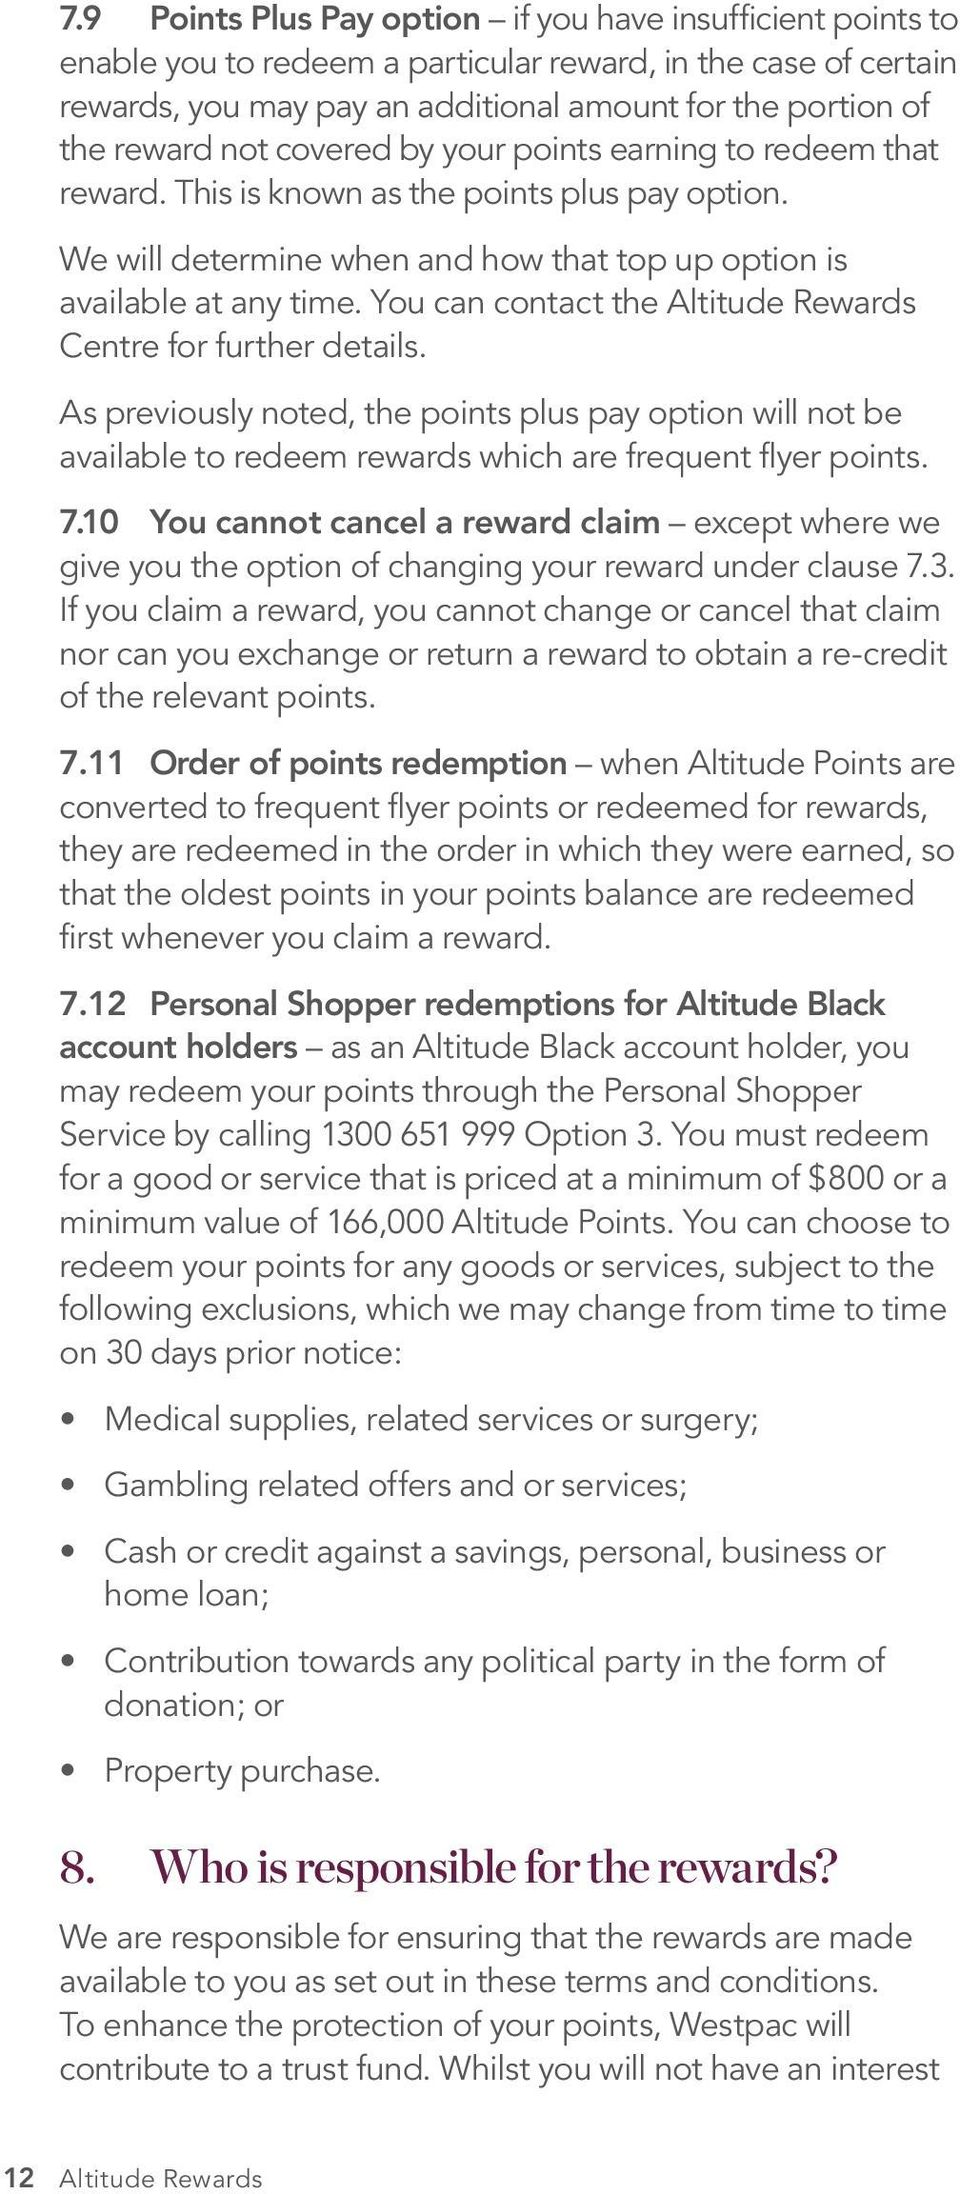 You can contact the Altitude Rewards Centre for further details. As previously noted, the points plus pay option will not be available to redeem rewards which are frequent flyer points. 7.